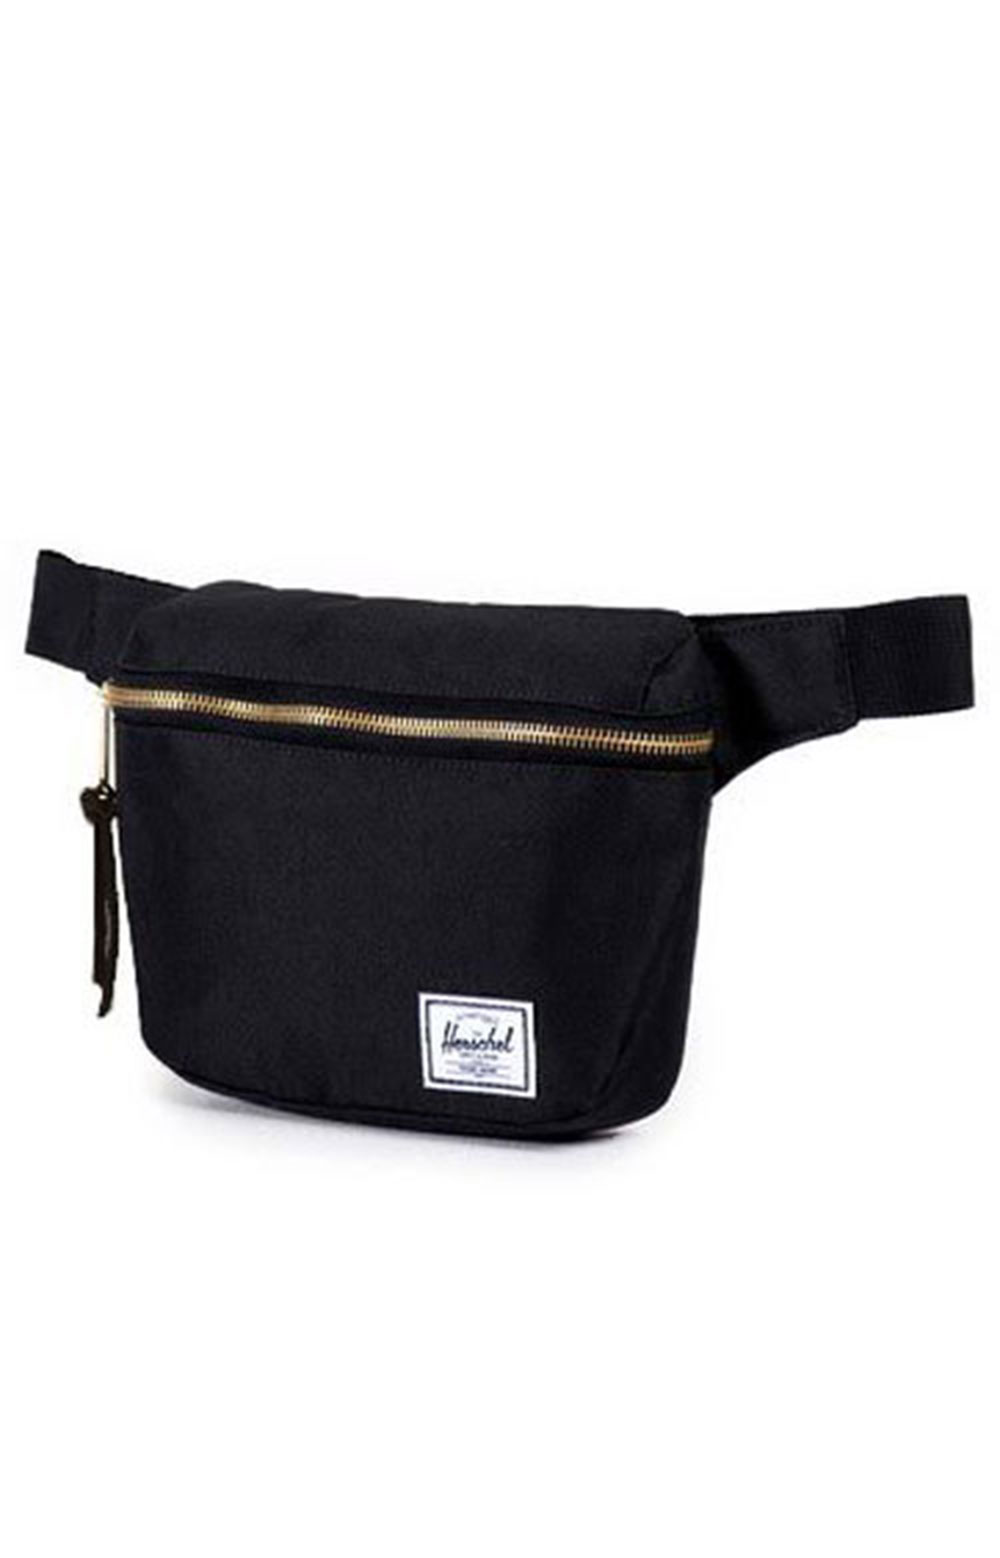 Fifteen Hip Pack - Black/Black Leather Pull 3